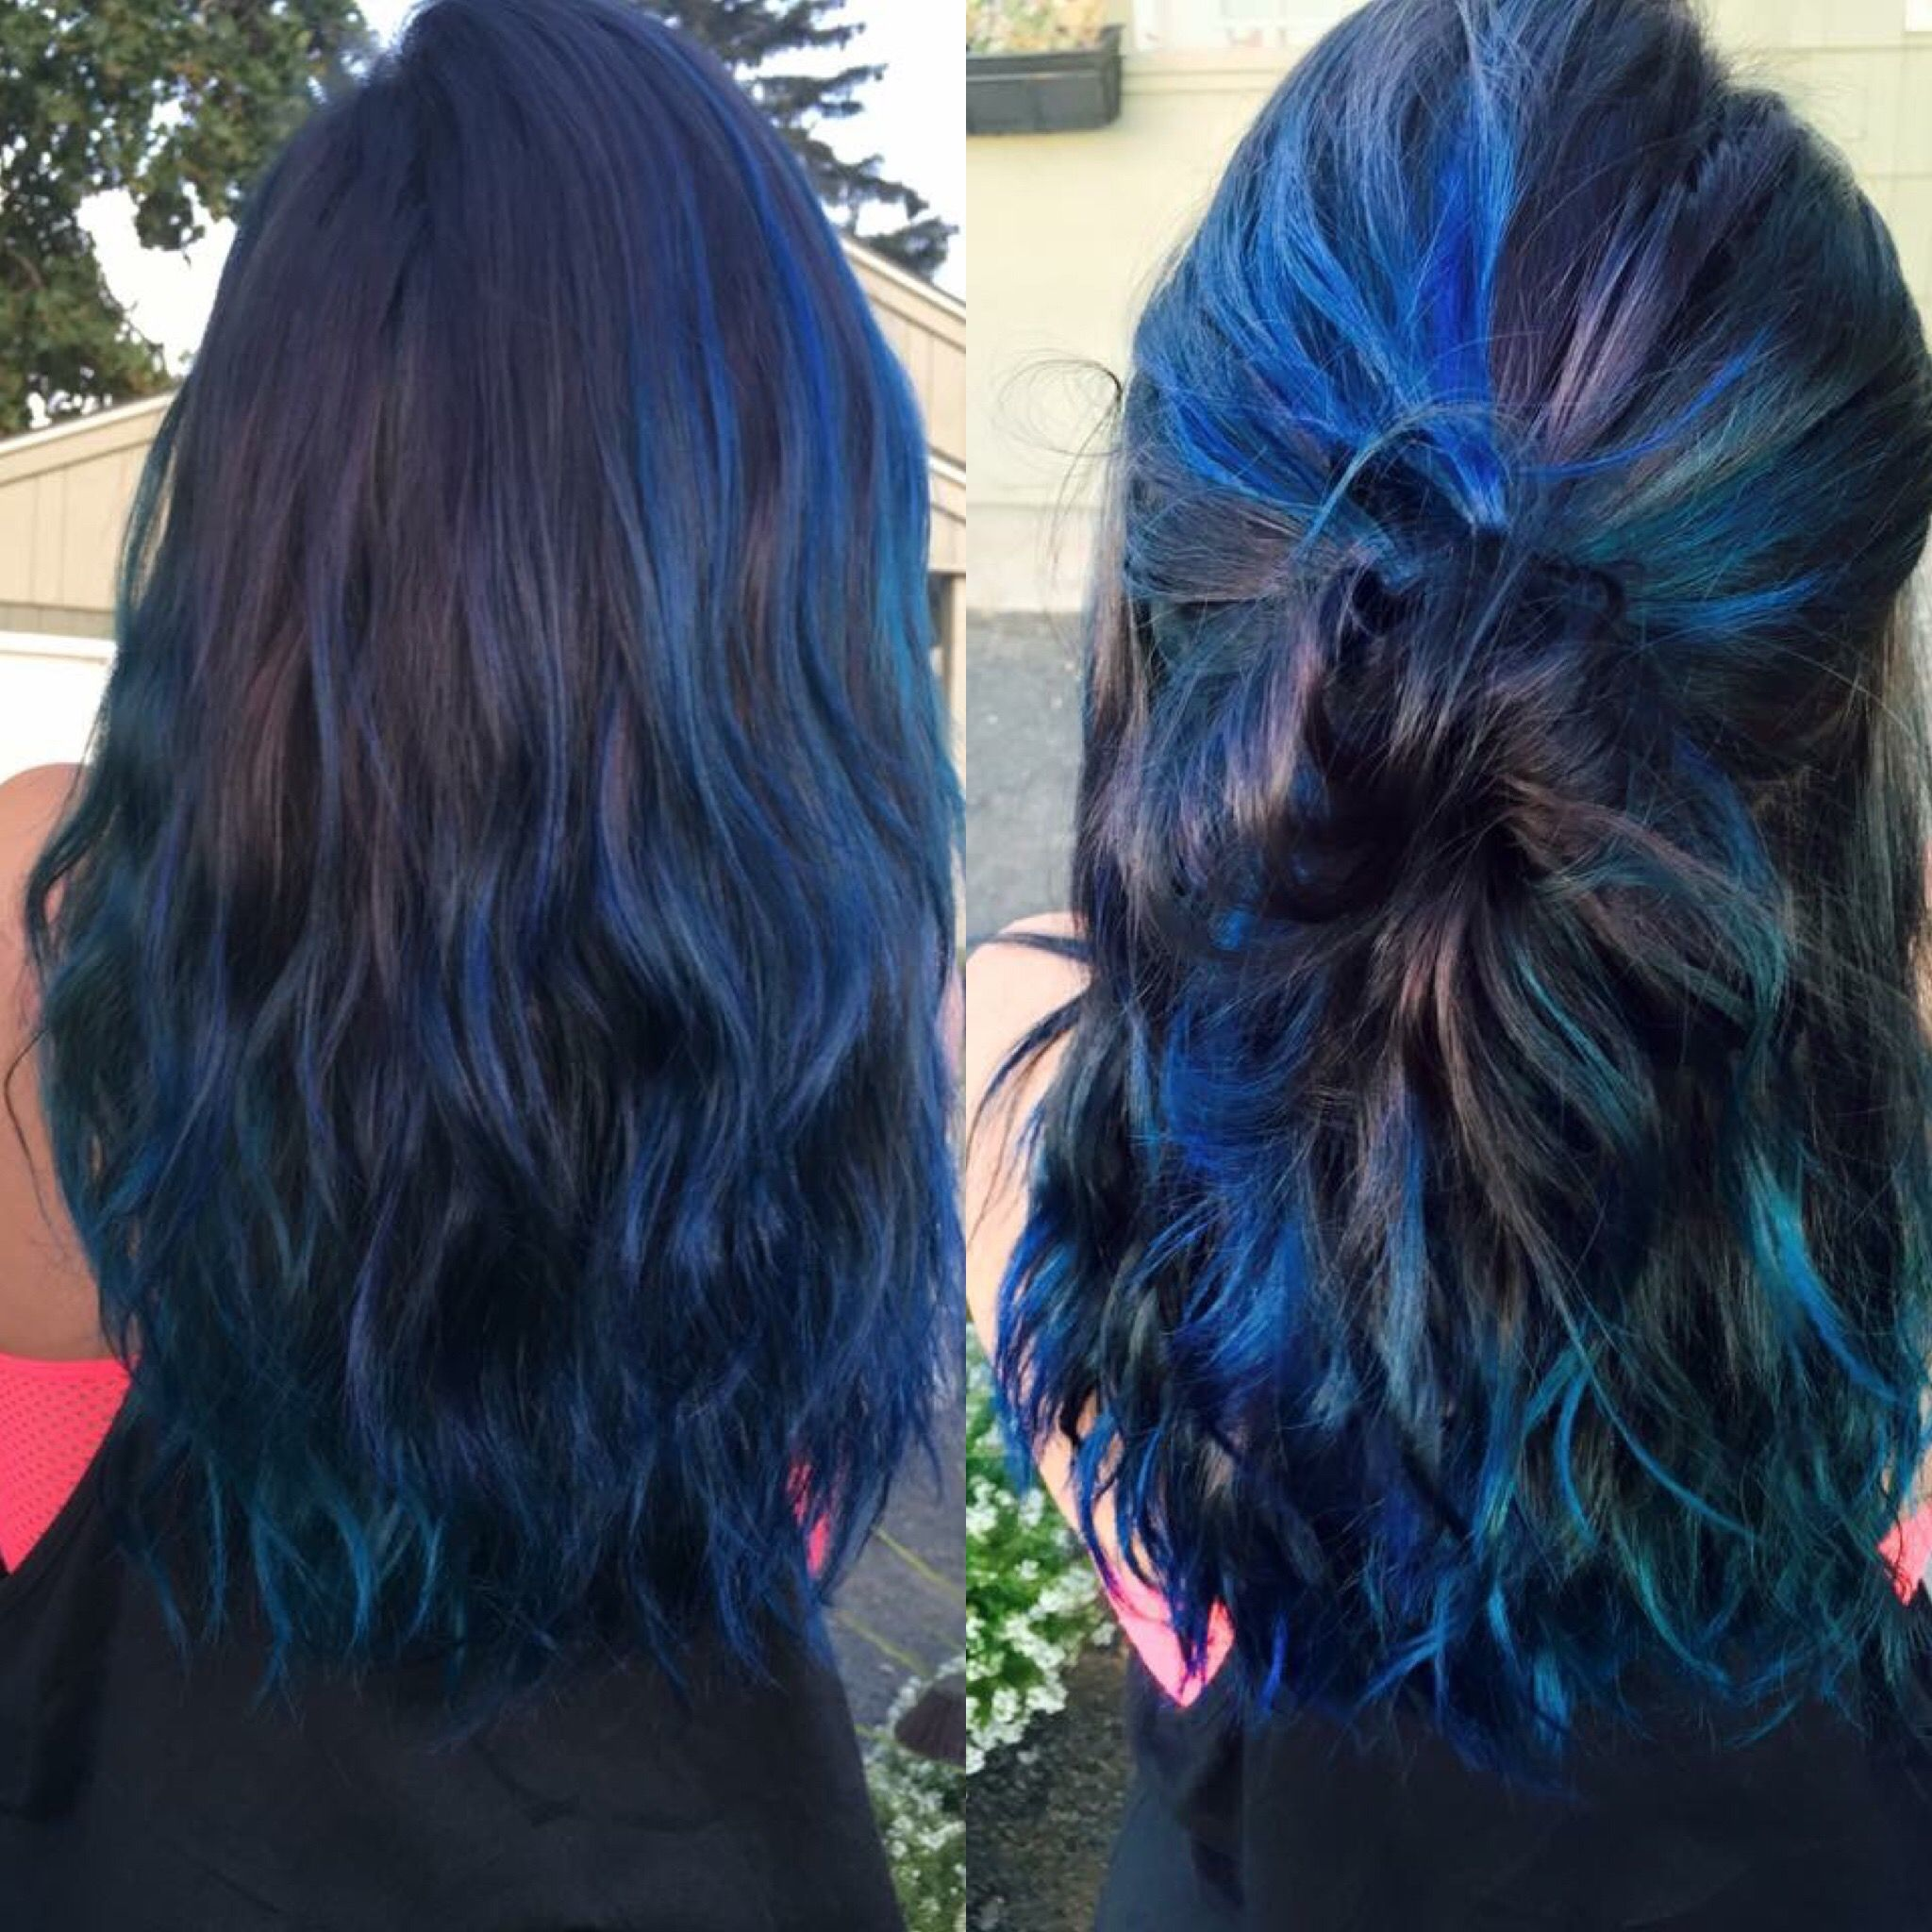 Oil Slick Hair Joico Color Intensity In Peacock Green And Cobalt